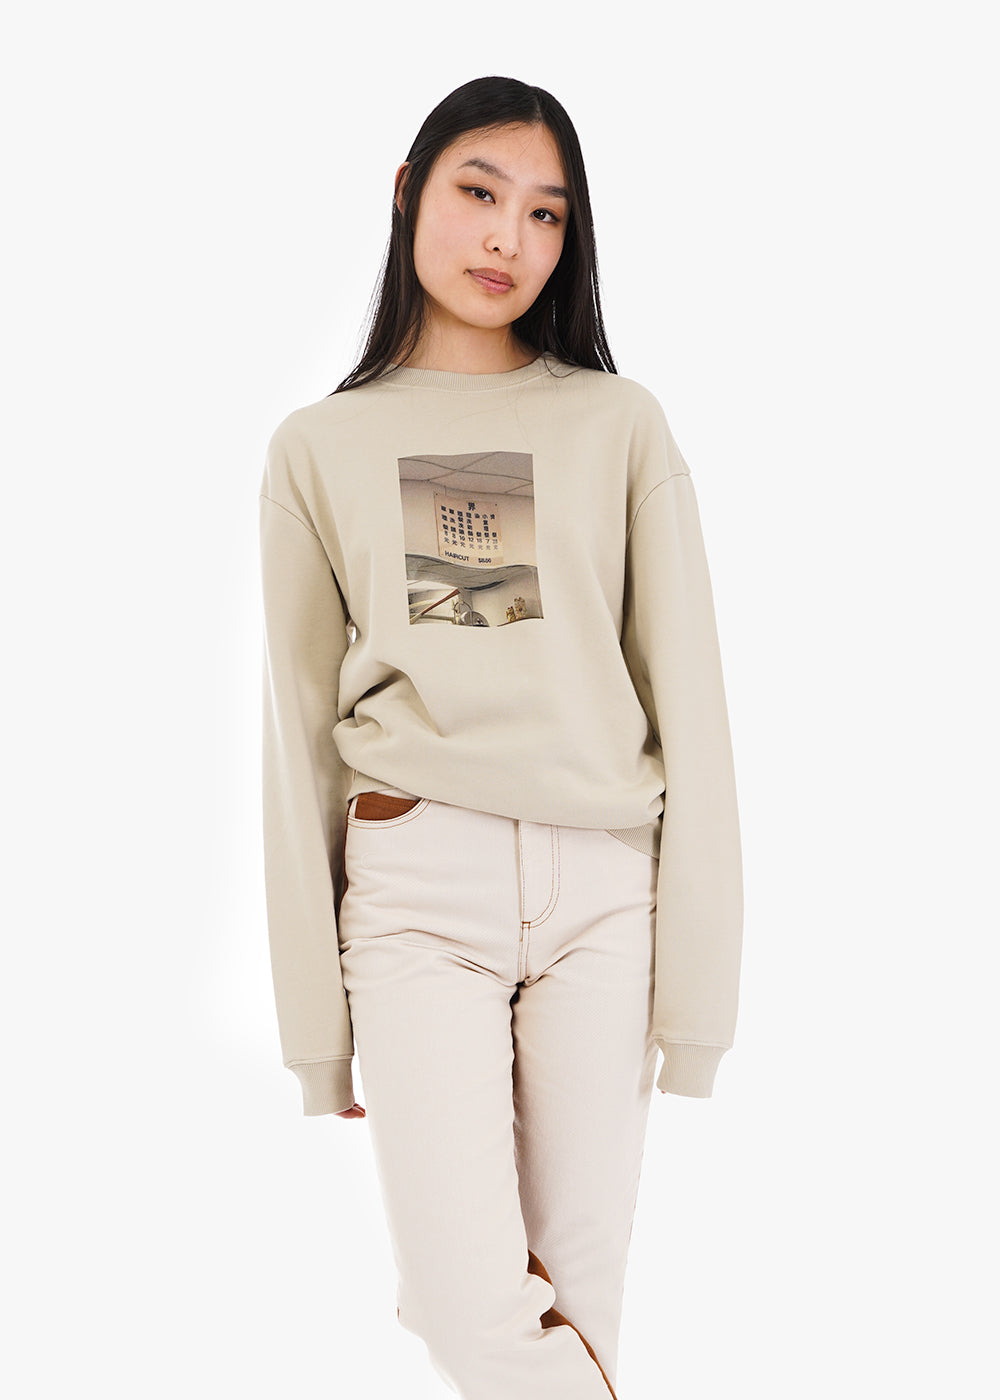 Paloma Wool Hostal Chinatown Sweater — Shop sustainable fashion and slow fashion at New Classics Studios